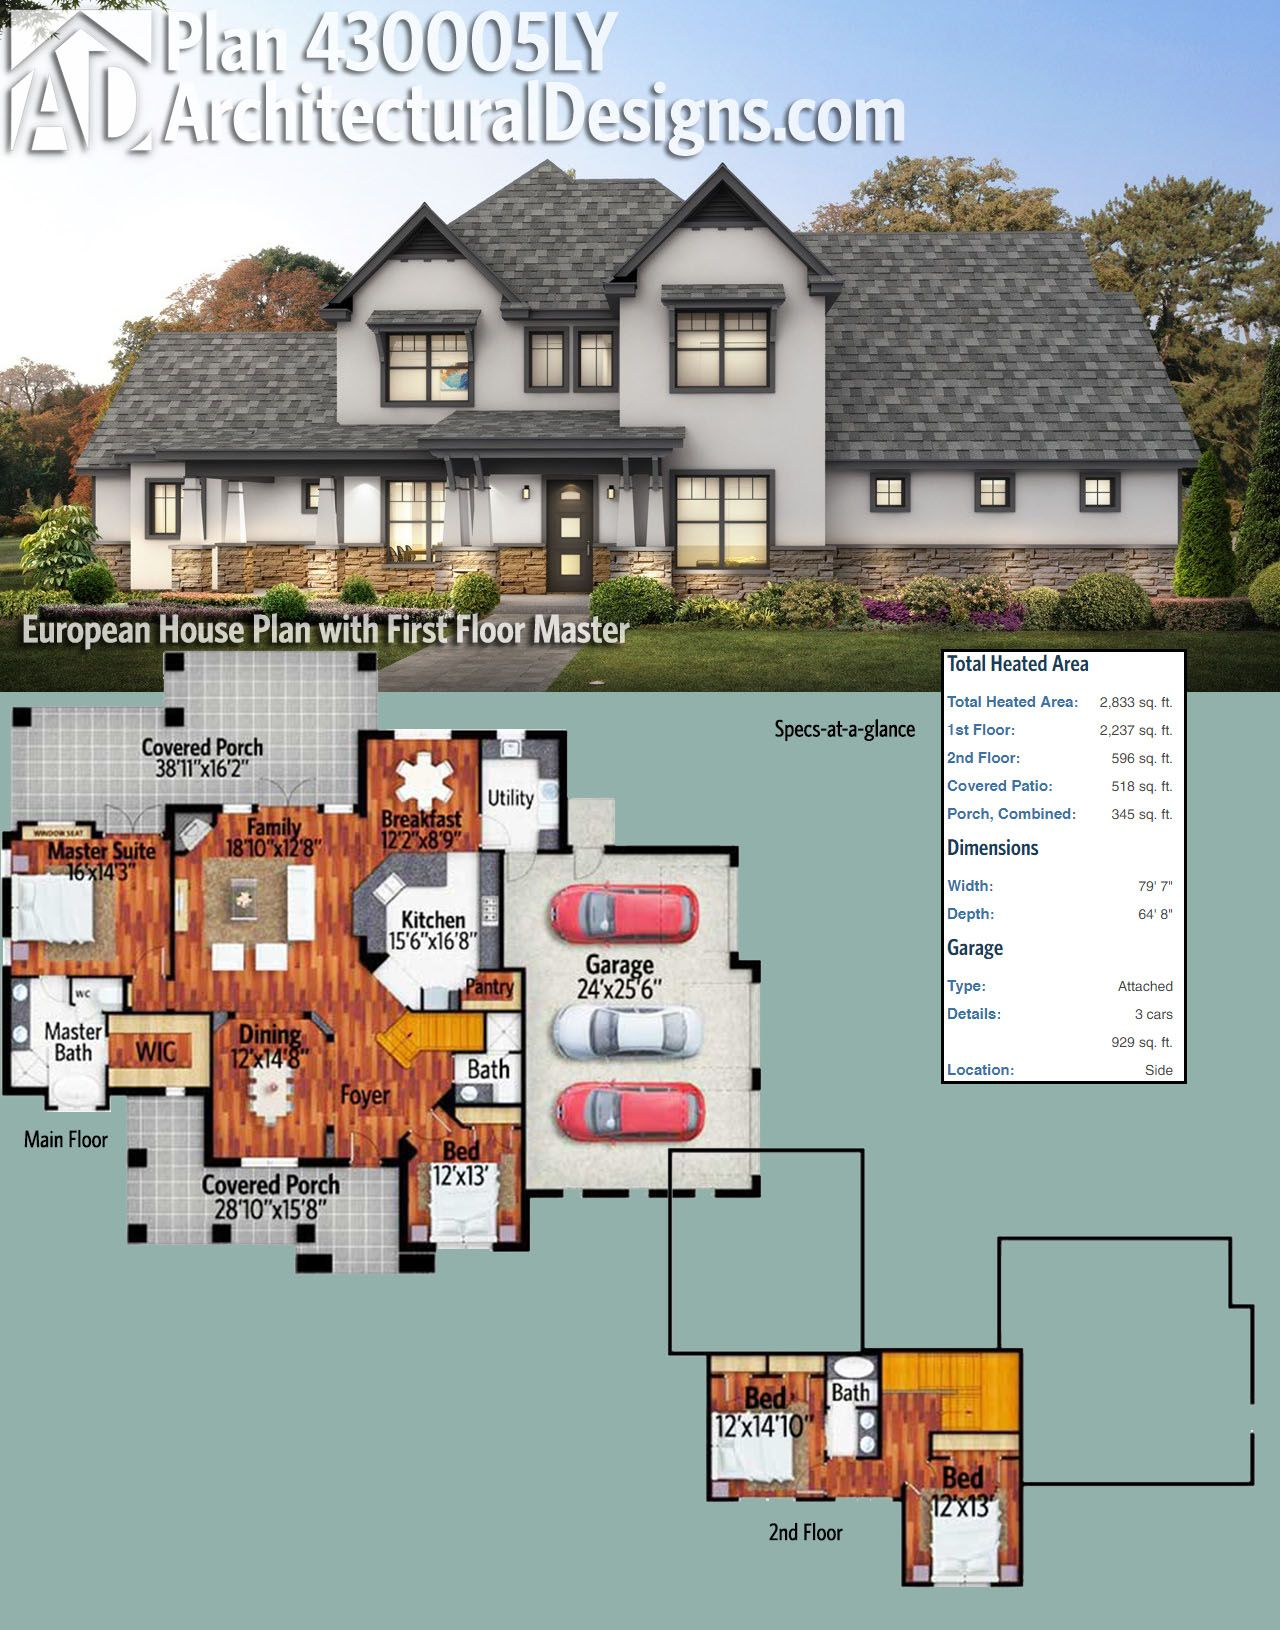 Plan 430005ly European House Plan With First Floor Master House Plans Craftsman Bungalow House Plans European House